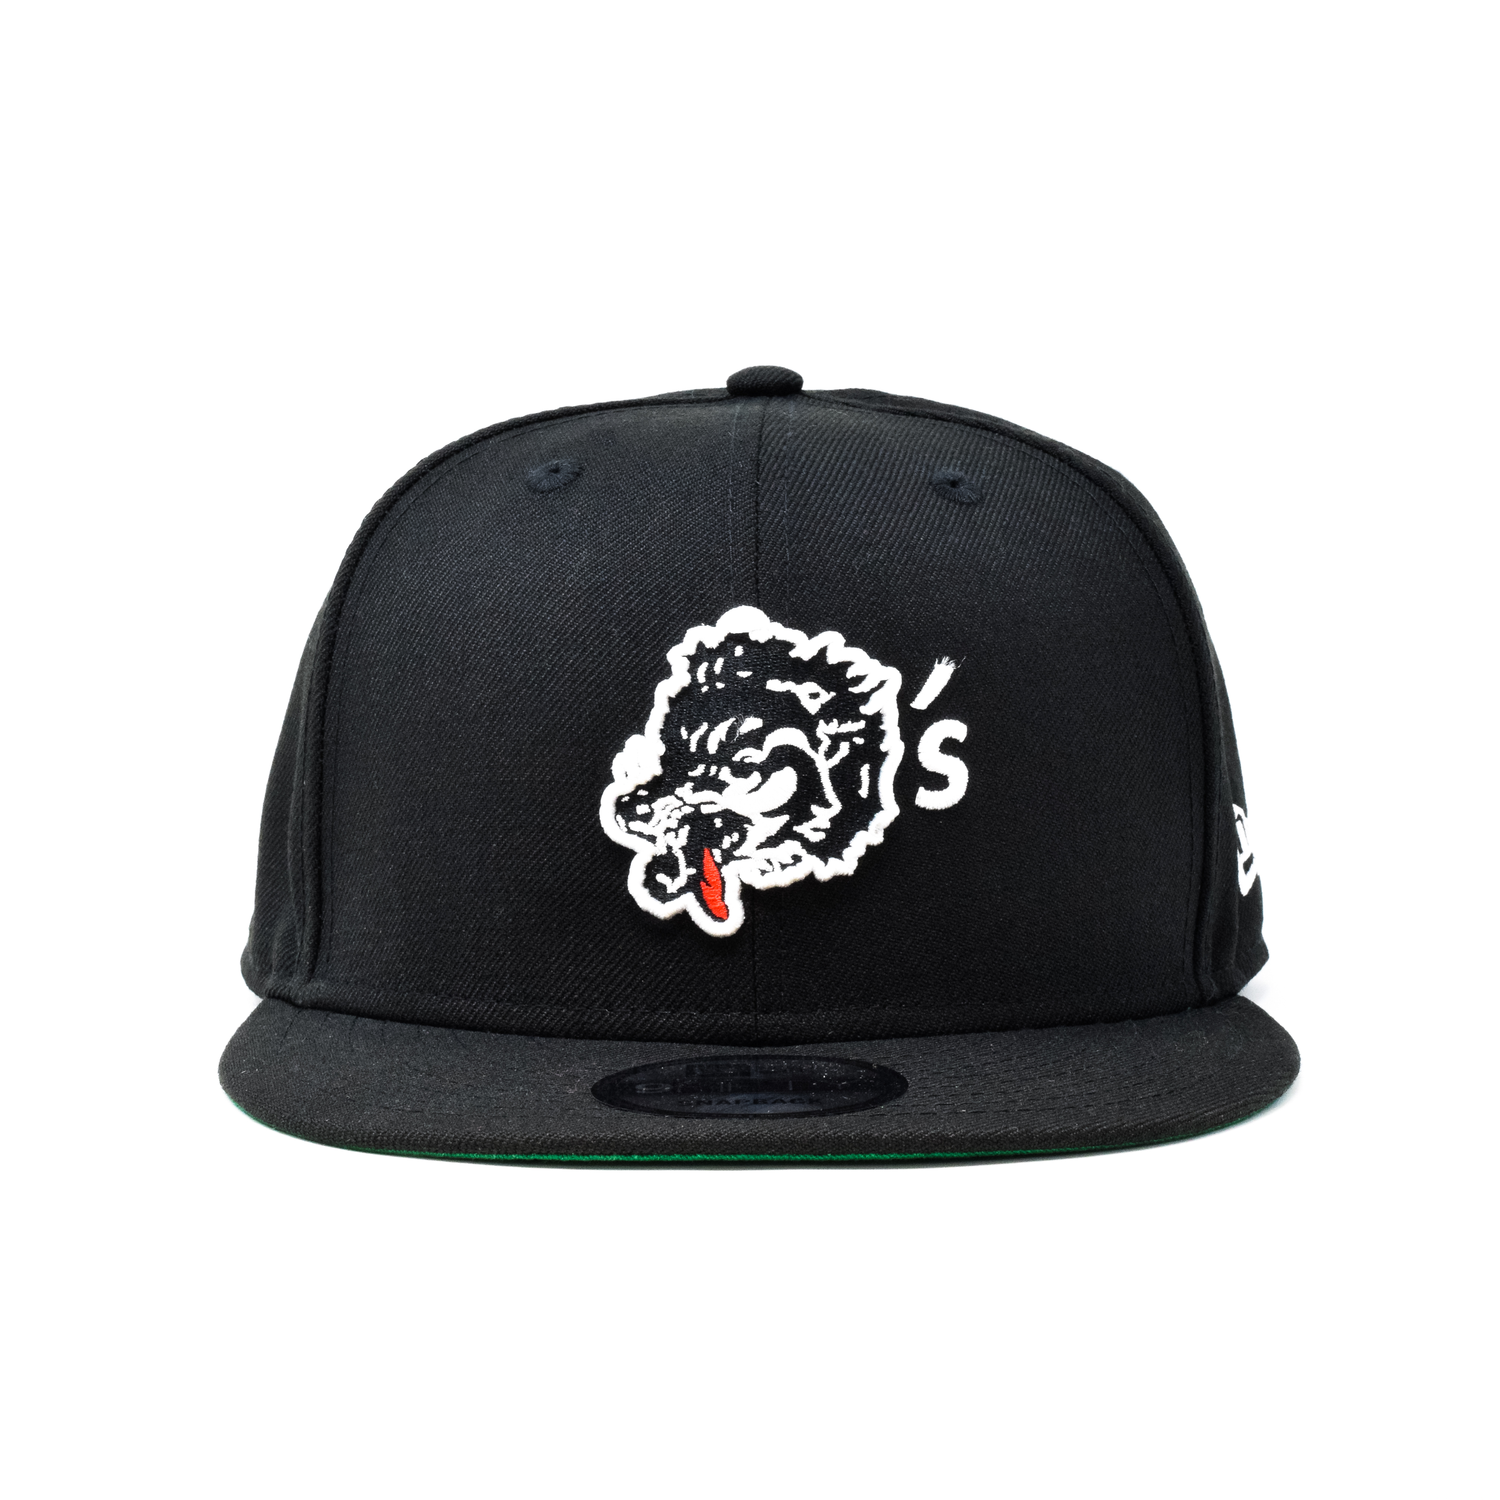 New Era For Wolf's Head - Black Baseball Cap